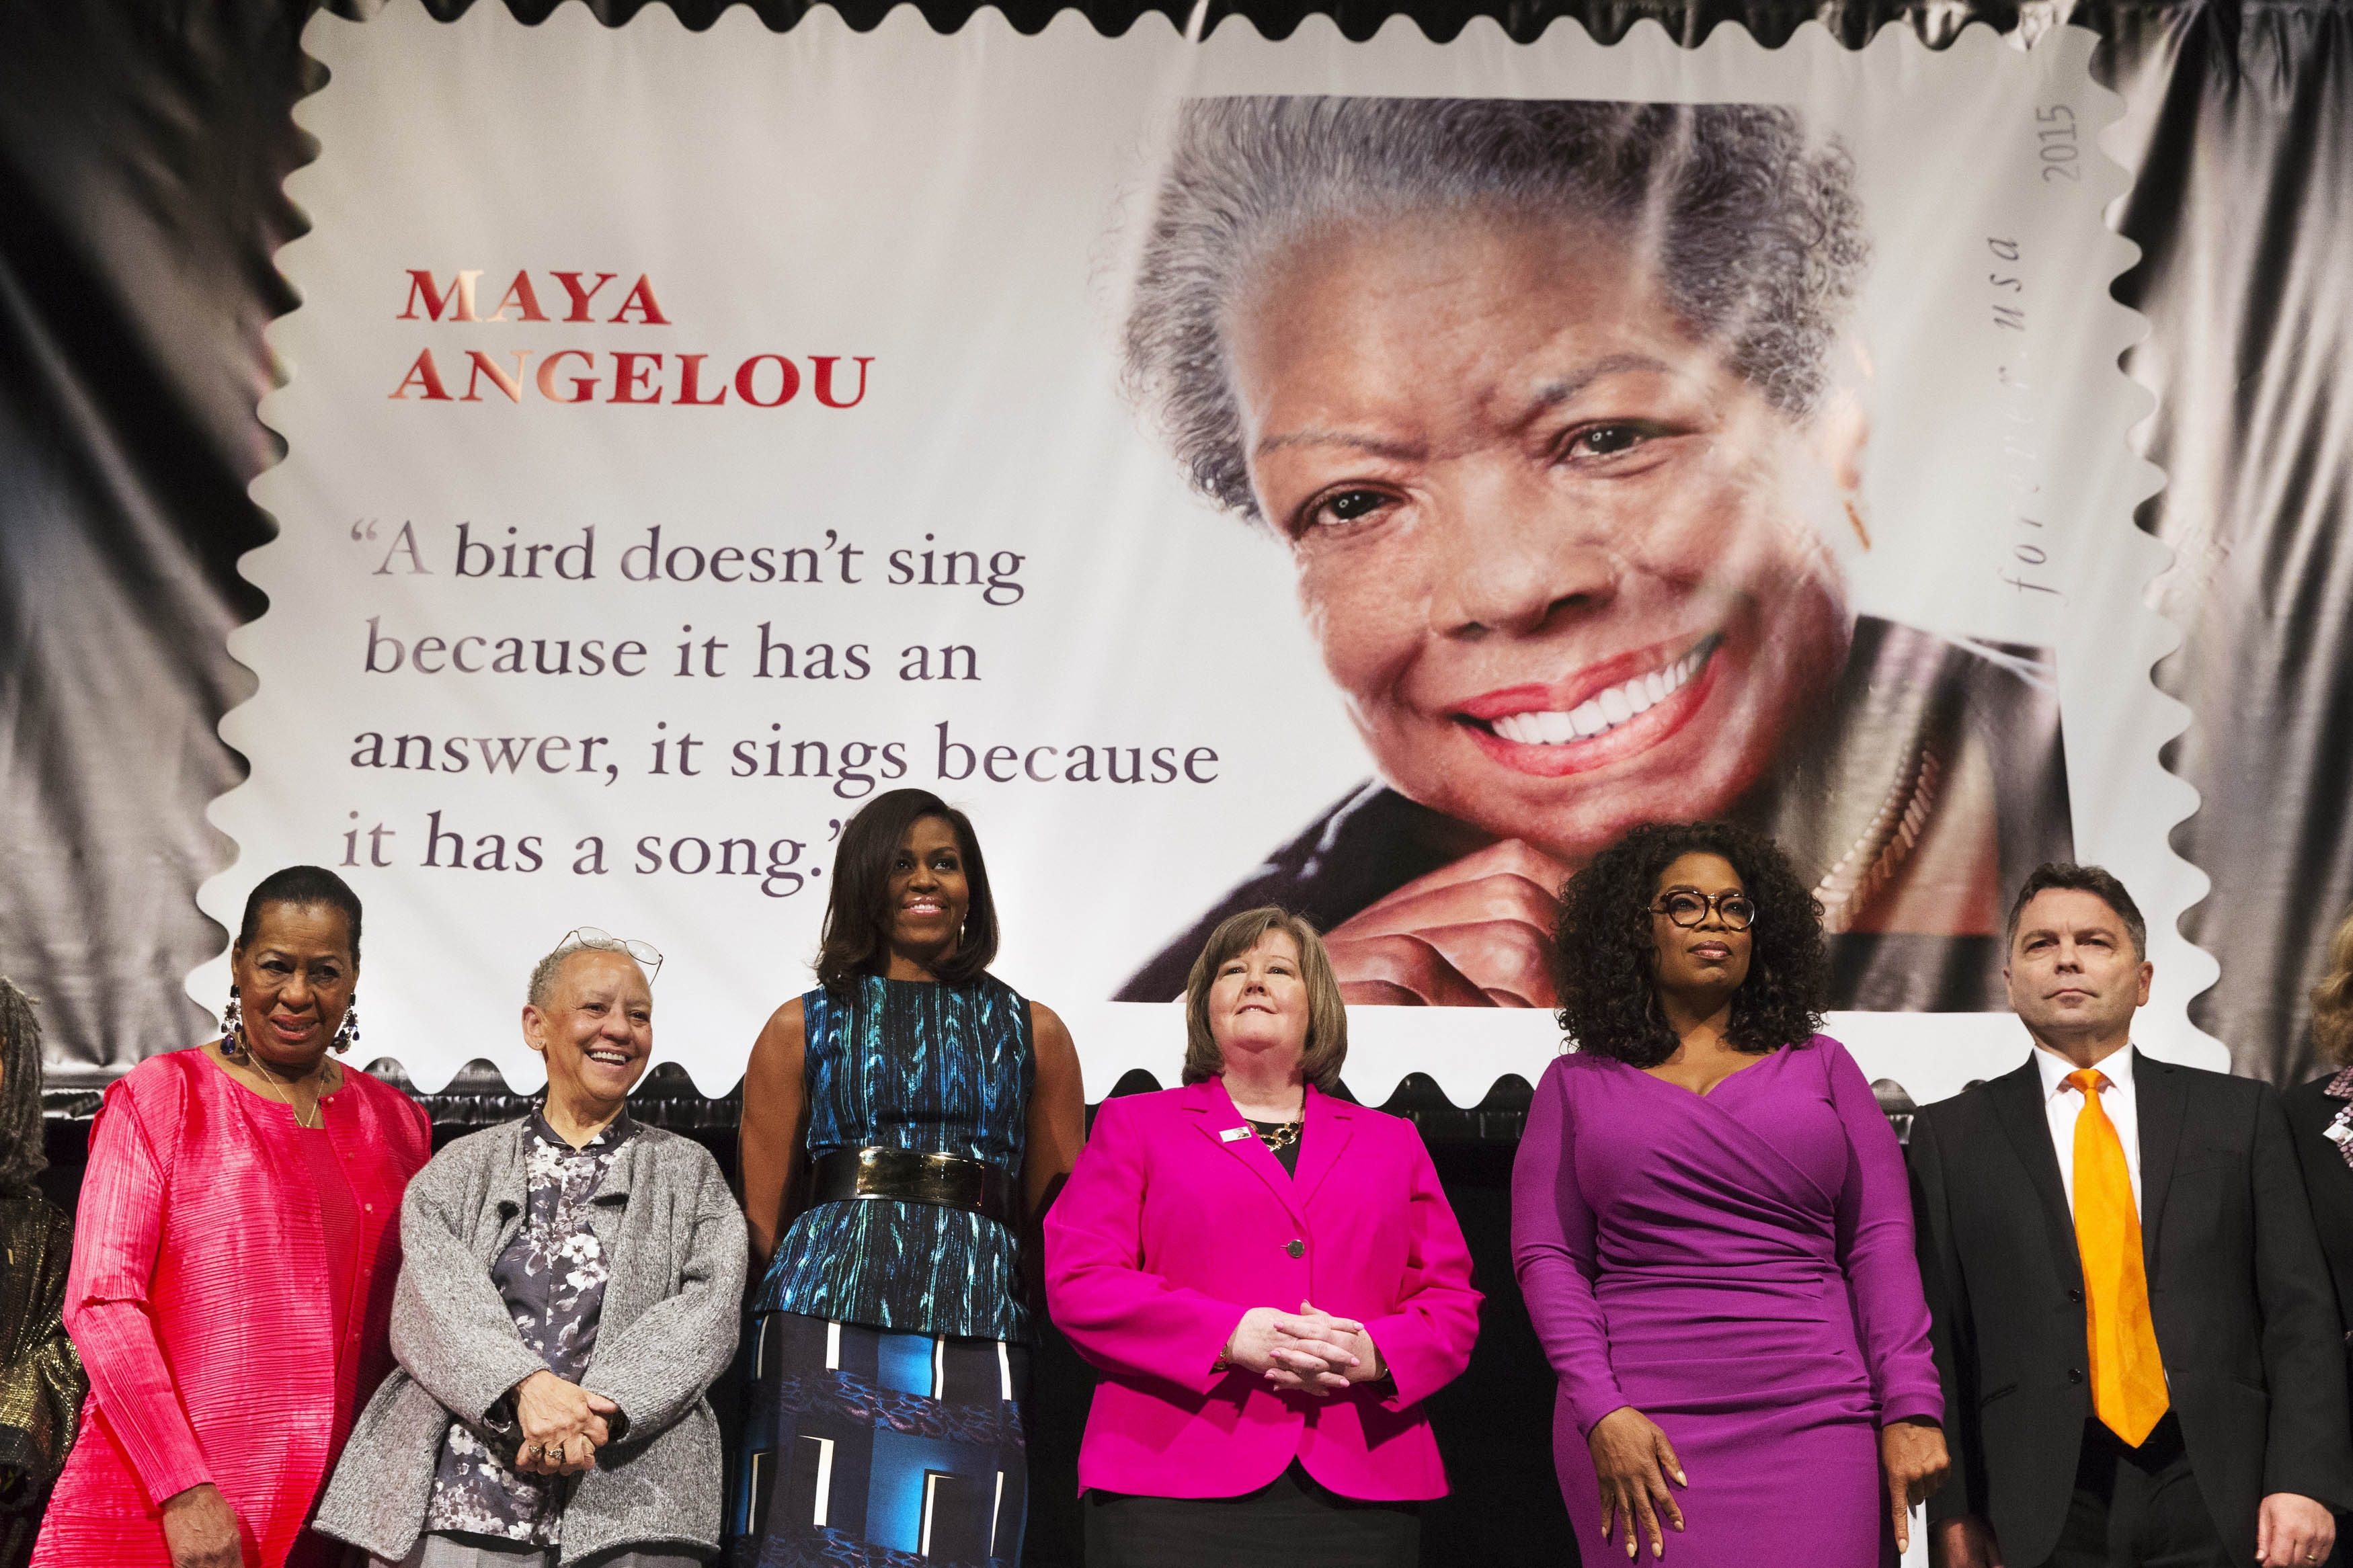 First lady Michelle Obama participates in the unveiling of the Maya Angelou Forever Stamp, Tuesday, April 7, 2015, at the Warner Theater in Washington D.C.